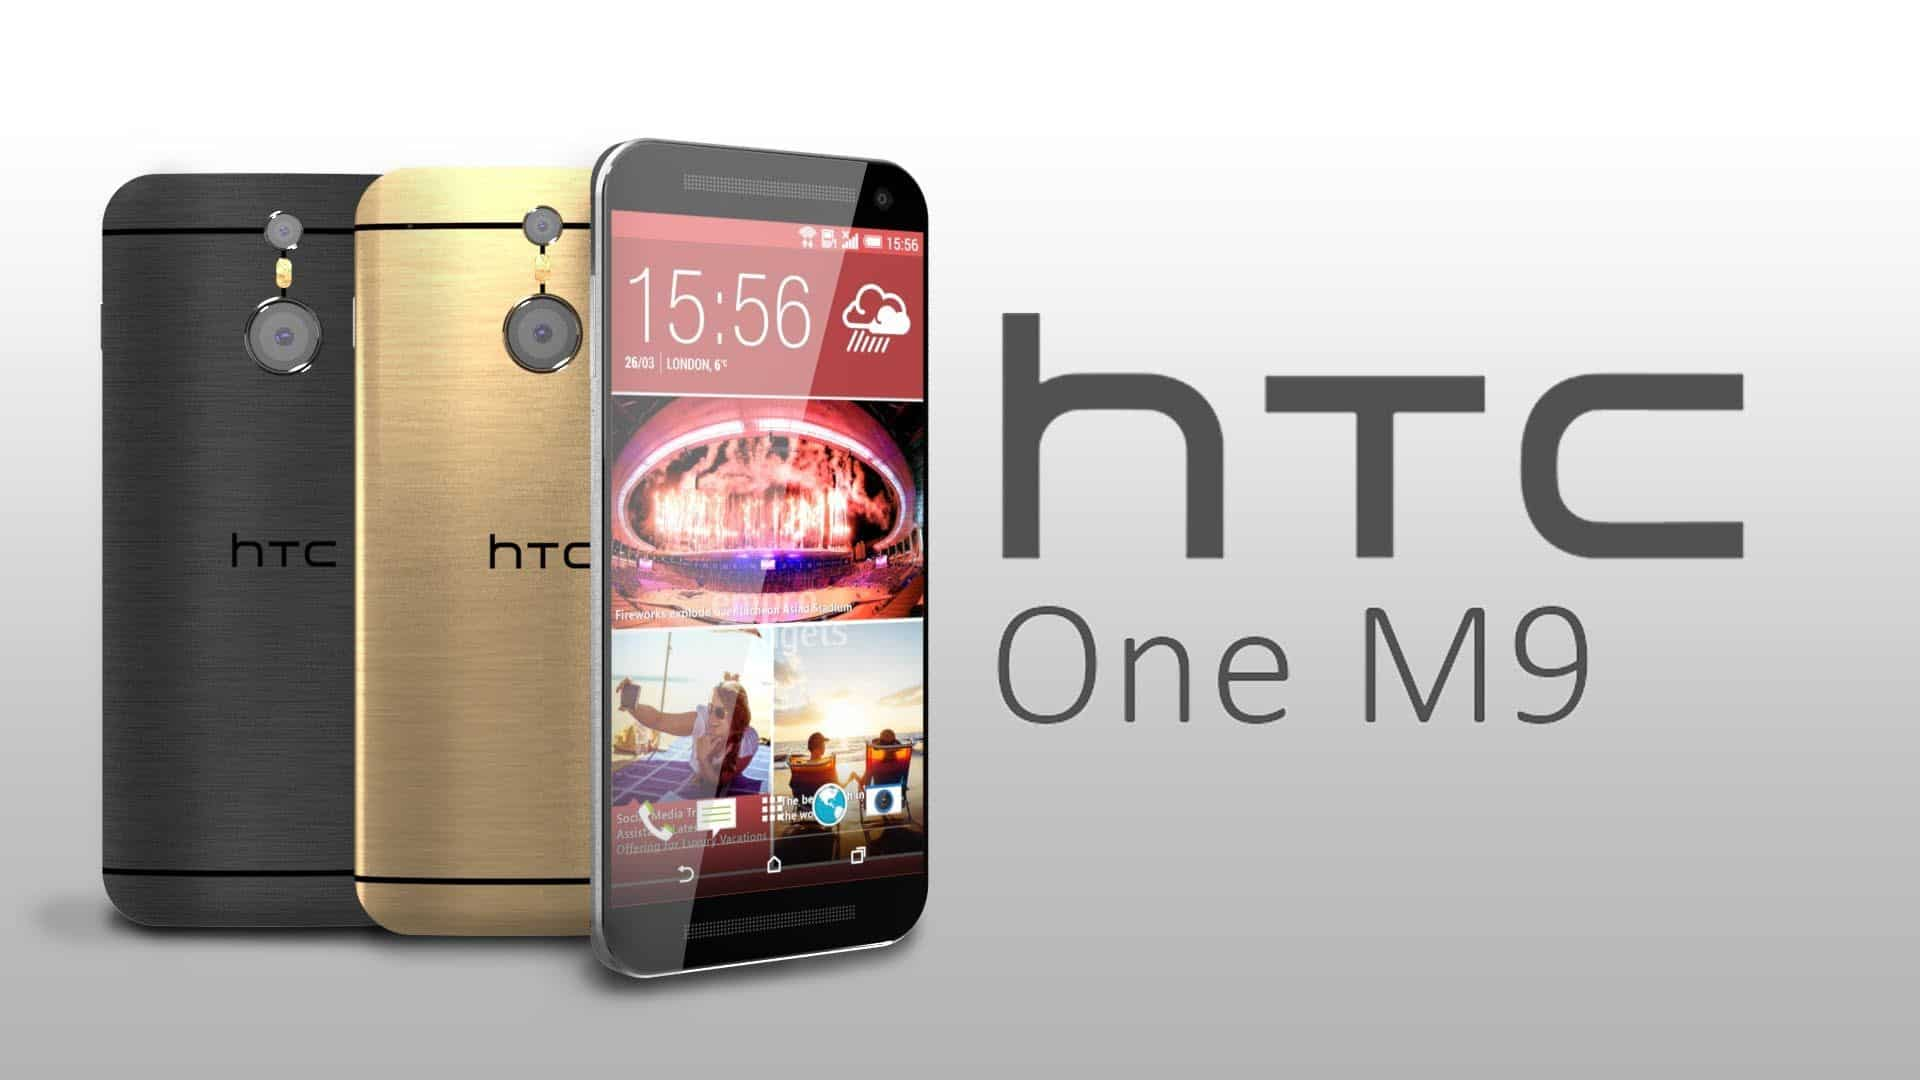 amazon HTC One M9 reviews HTC One M9 on amazon newest HTC One M9 prices of HTC One M9 HTC One M9 deals best deals on HTC One M9 buying a HTC One M9 lastest HTC One M9 what is a HTC One M9 HTC One M9 at amazon where to buy HTC One M9 where can i you get a HTC One M9 online purchase HTC One M9 sale off discount cheapest HTC One M9  HTC One M9 for sale android 6.0 htc one m9 about htc one m9 at&t htc one m9 antutu htc one m9 htc one m9 at&t android 6 htc one m9 amazon htc one m9 android m htc one m9 antutu benchmark htc one m9 android 5.1 htc one m9 best htc one m9 cases best htc one m9 deals buy htc one m9 online ban htc one m9 bd price of htc one m9 bewertung htc one m9 bedienungsanleitung htc one m9 bestbuy htc one m9 buy htc one m9 bouygues htc one m9 có nên mua htc one m9 celular htc one m9 caracteristicas del htc one m9 ceneo htc one m9 cijena htc one m9 concept htc one m9 camera htc one m9 cyanogenmod htc one m9 case htc one m9 plus cost of htc one m9 danh gia htc one m9 dien thoai htc one m9 danh gia chi tiet htc one m9 dien thoai htc one m9 plus dap hop htc one m9 deals on htc one m9 dubai htc one m9 price driver htc one m9 didongthongminh htc one m9 dual sim htc one m9 ee htc one m9 ebay htc one m9 case emag htc one m9 en ucuz htc one m9 ebay uk htc one m9 expected price of htc one m9 in india emojis on htc one m9 etui htc one m9 essai htc one m9 expandable memory htc one m9 frozen htc one m9 fiche technique htc one m9 fingerprint scanner htc one m9 fingerprint sensor htc one m9 fpt htc one m9 fake htc one m9 ficha tecnica htc one m9 firmware htc one m9 gia htc one m9 gsmarena htc one m9 gold htc one m9 galaxy s6 vs htc one m9 galaxy note 4 vs htc one m9 geekbench htc one m9 gunmetal grey htc one m9 gold htc one m9 price htc one m9 gunmetal galaxy s6 vs iphone 6 vs htc one m9 how to root htc one m9 hard reset htc one m9 how much is htc one m9 how to reset htc one m9 htc one m9 vs htc one m9 plus htc one a9 và htc one m9 htc one m7 vs htc one m9 huawei p8 vs h